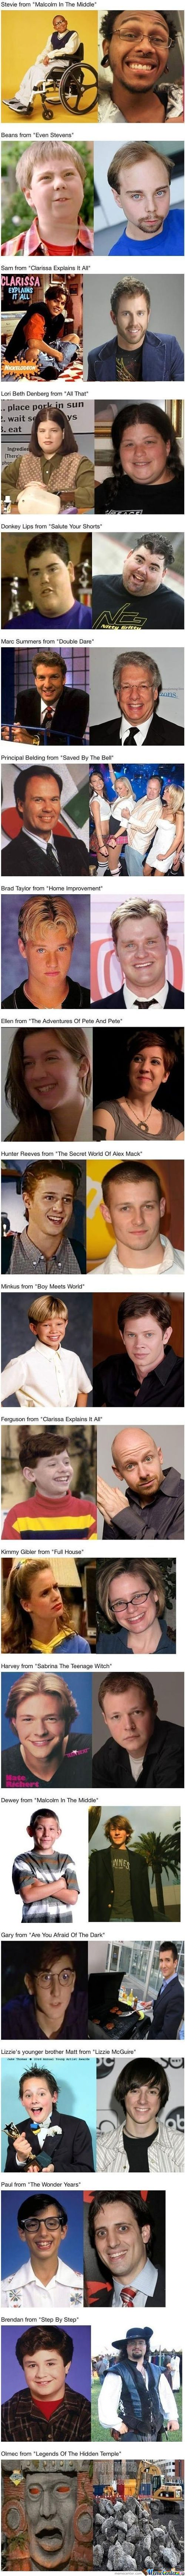 Tv Stars Then And Now (Sry For Long Post)